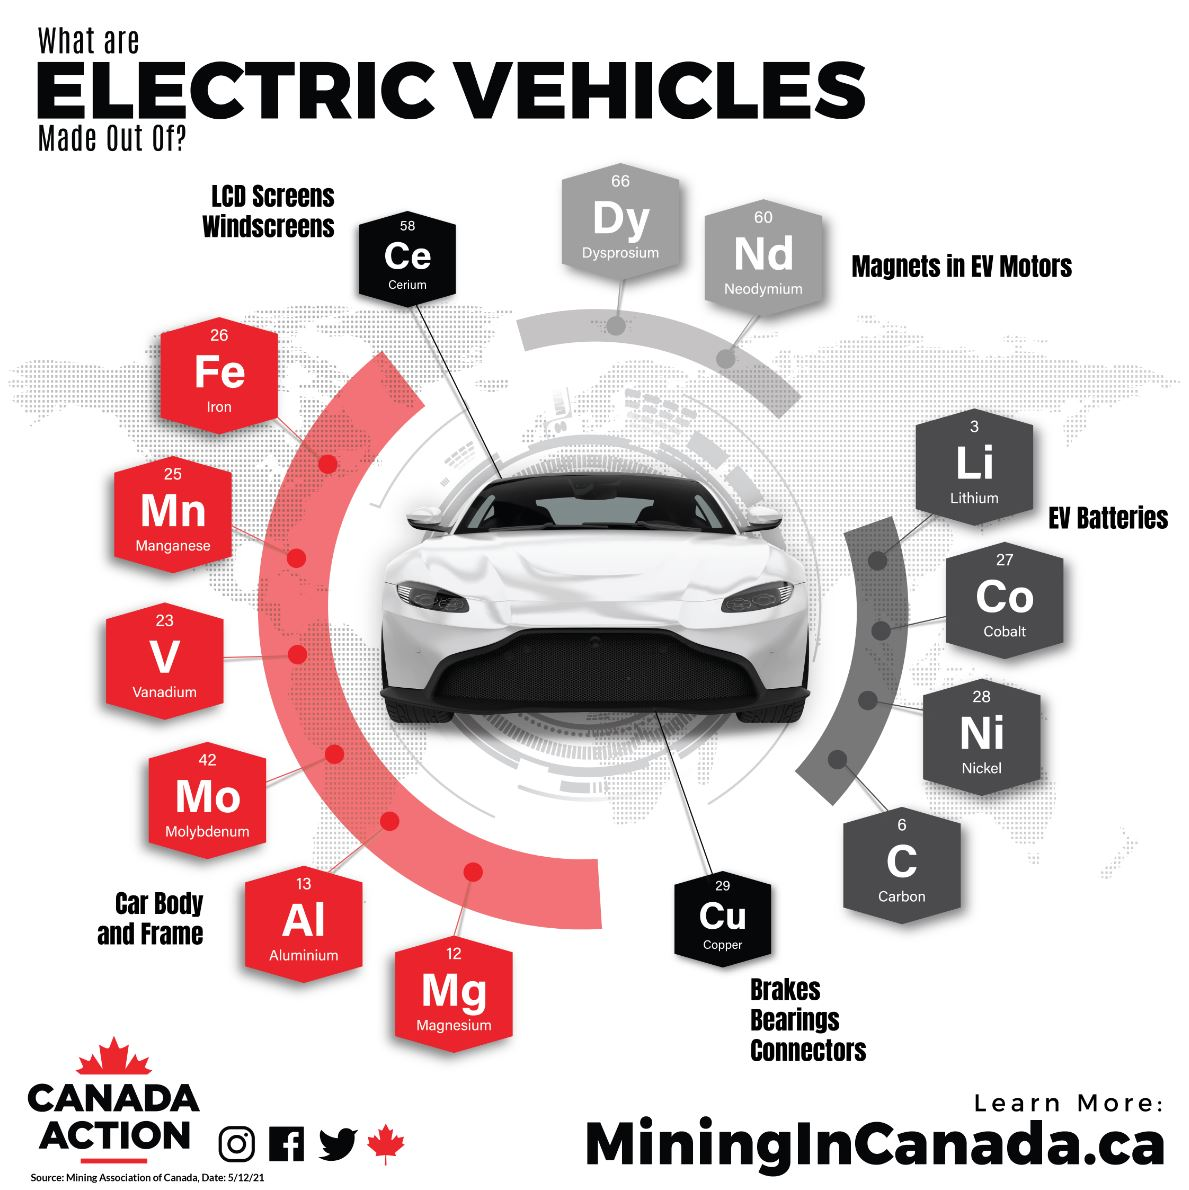 What Minerals and Metals Are Used to Manufacture Electric Vehicles